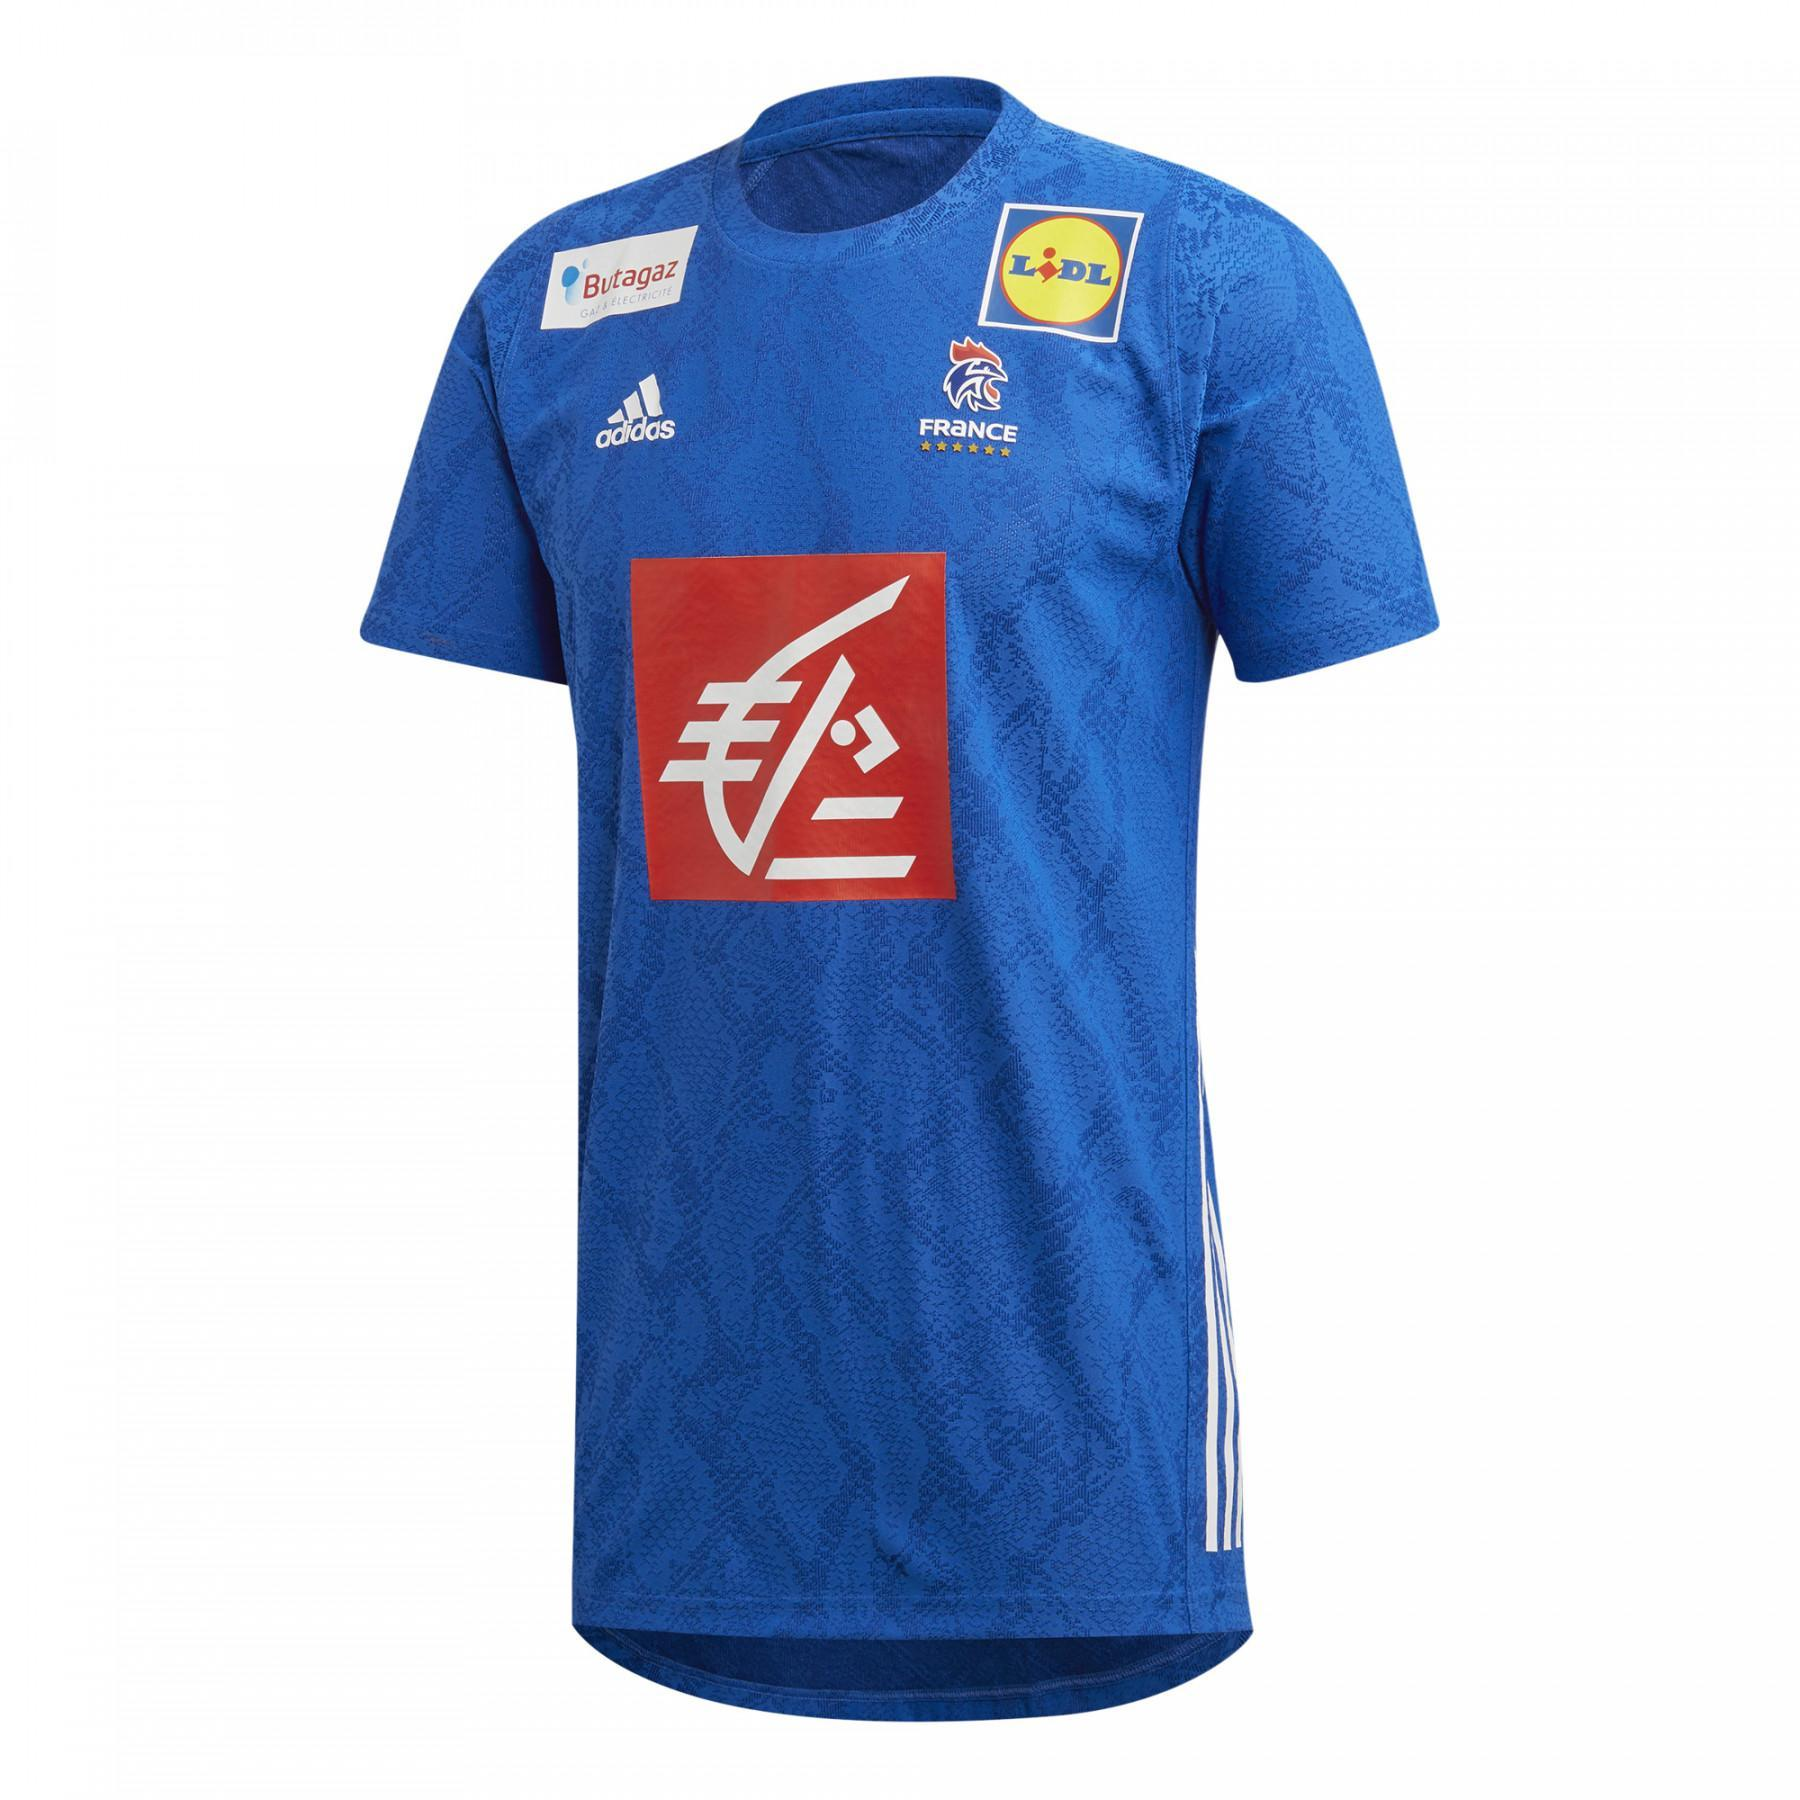 France home jersey 2019/20